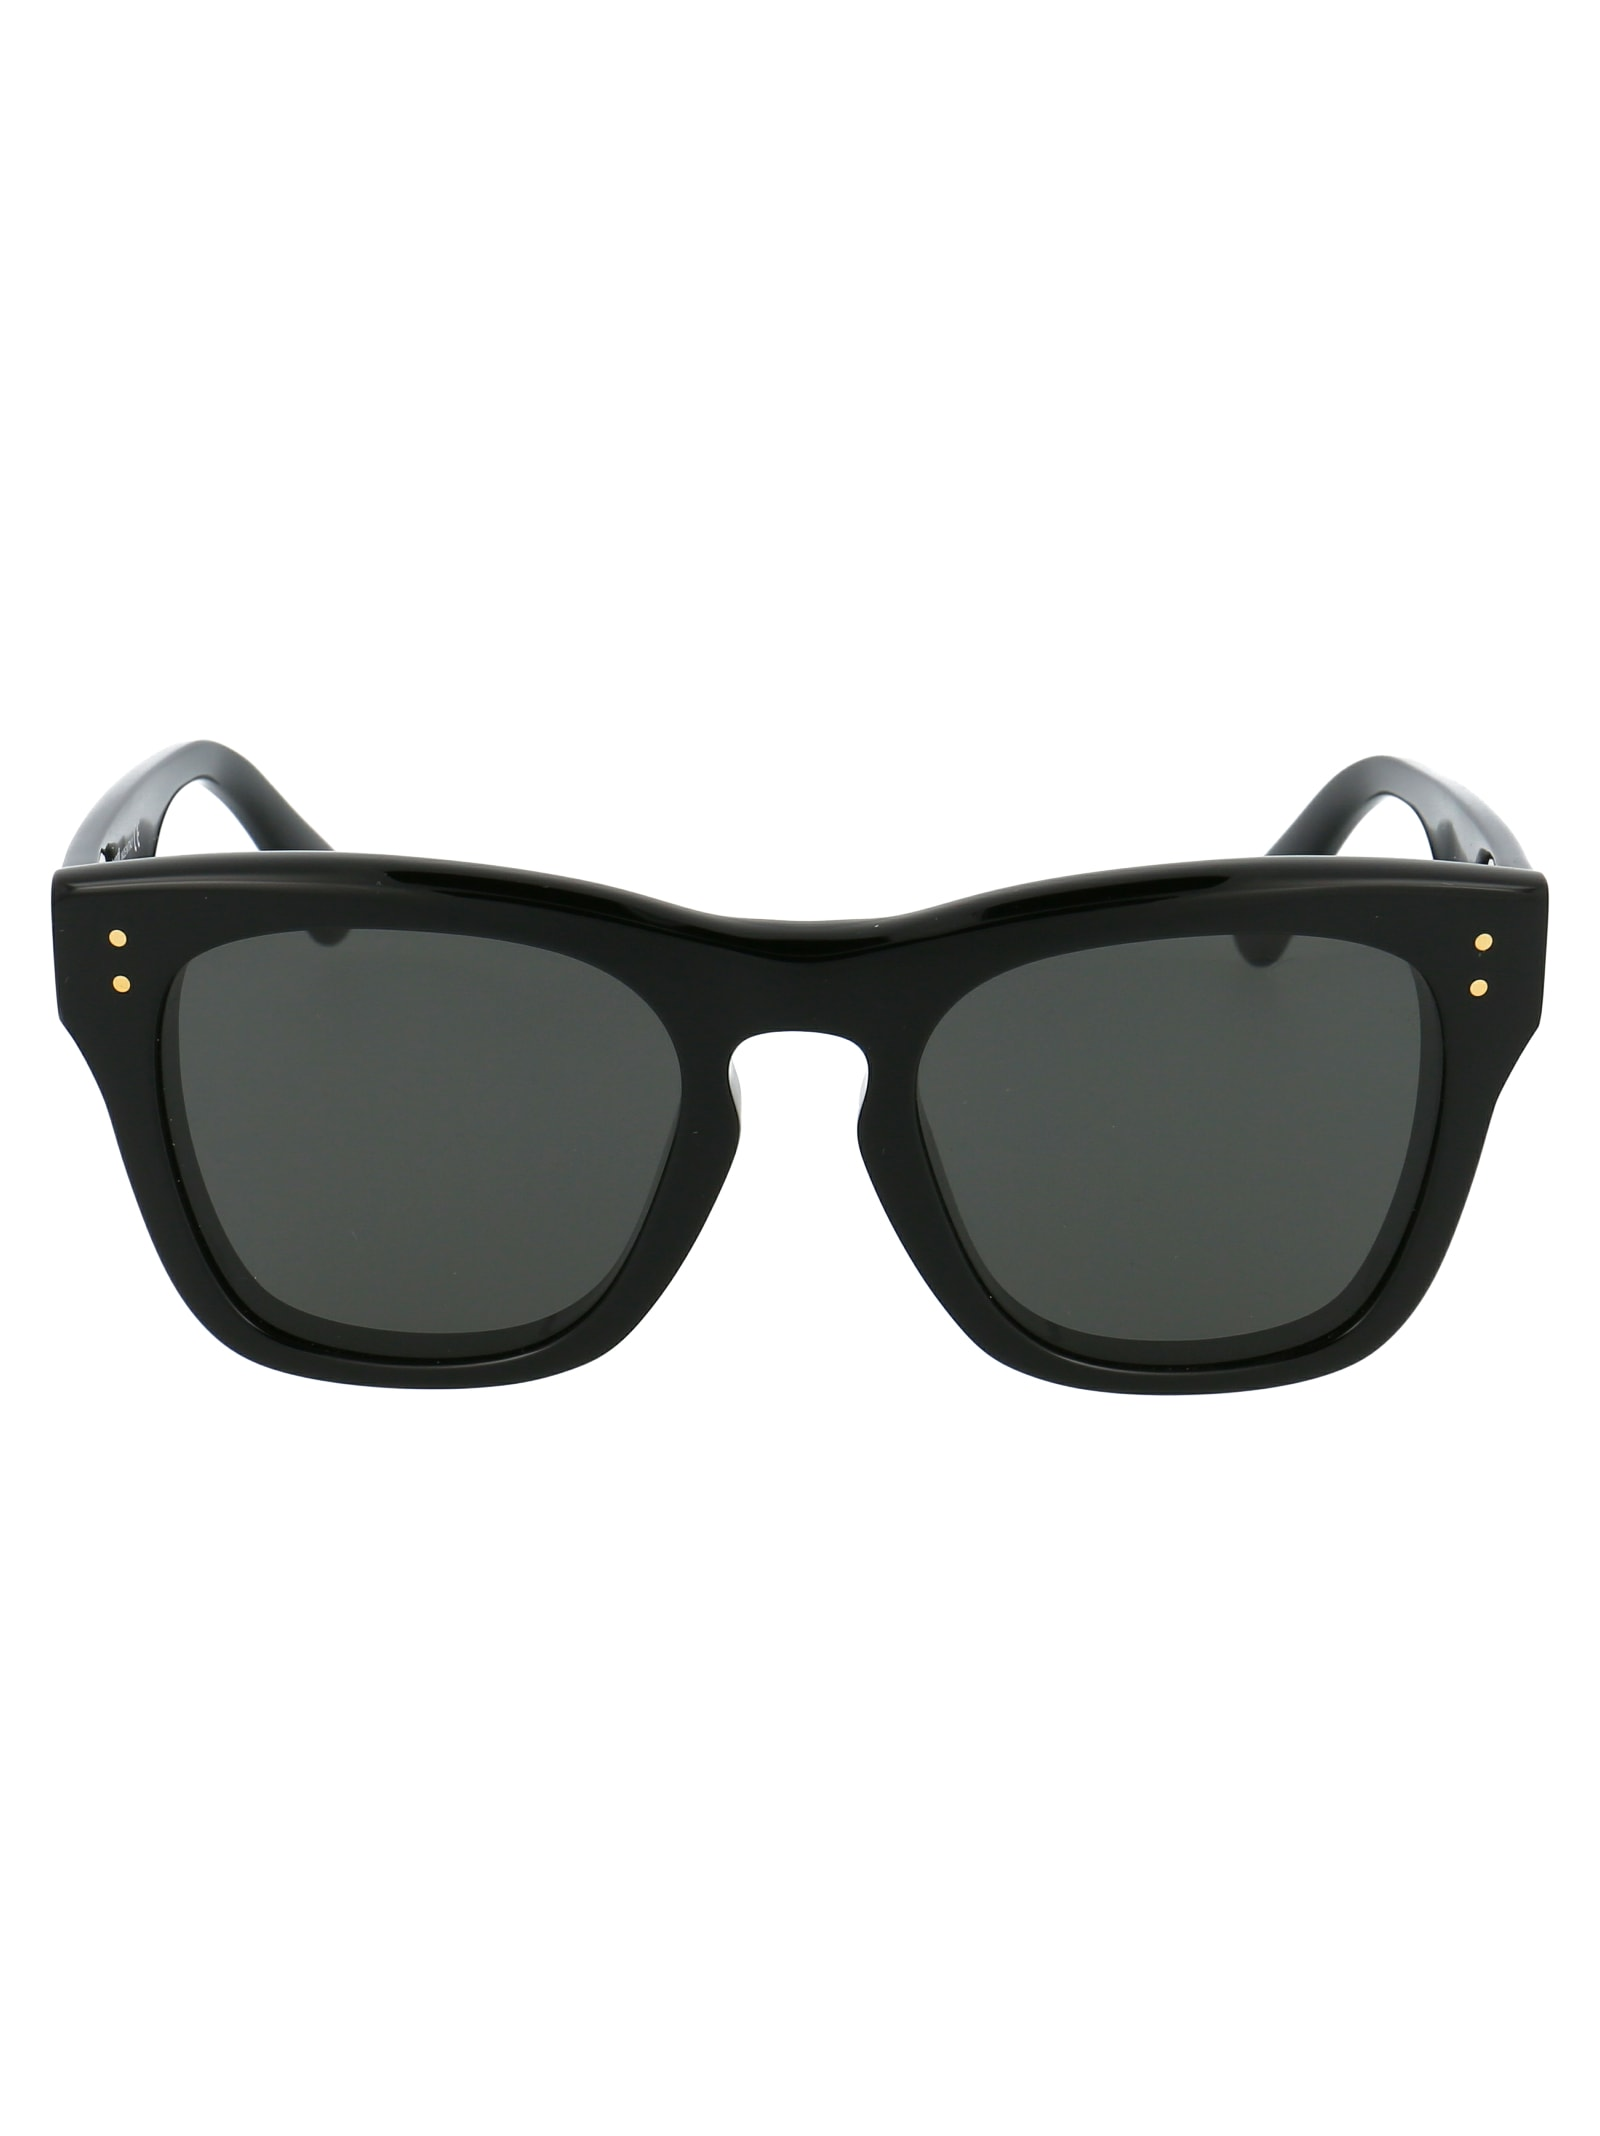 Roberto Cavalli Sunglasses SUNGLASSES